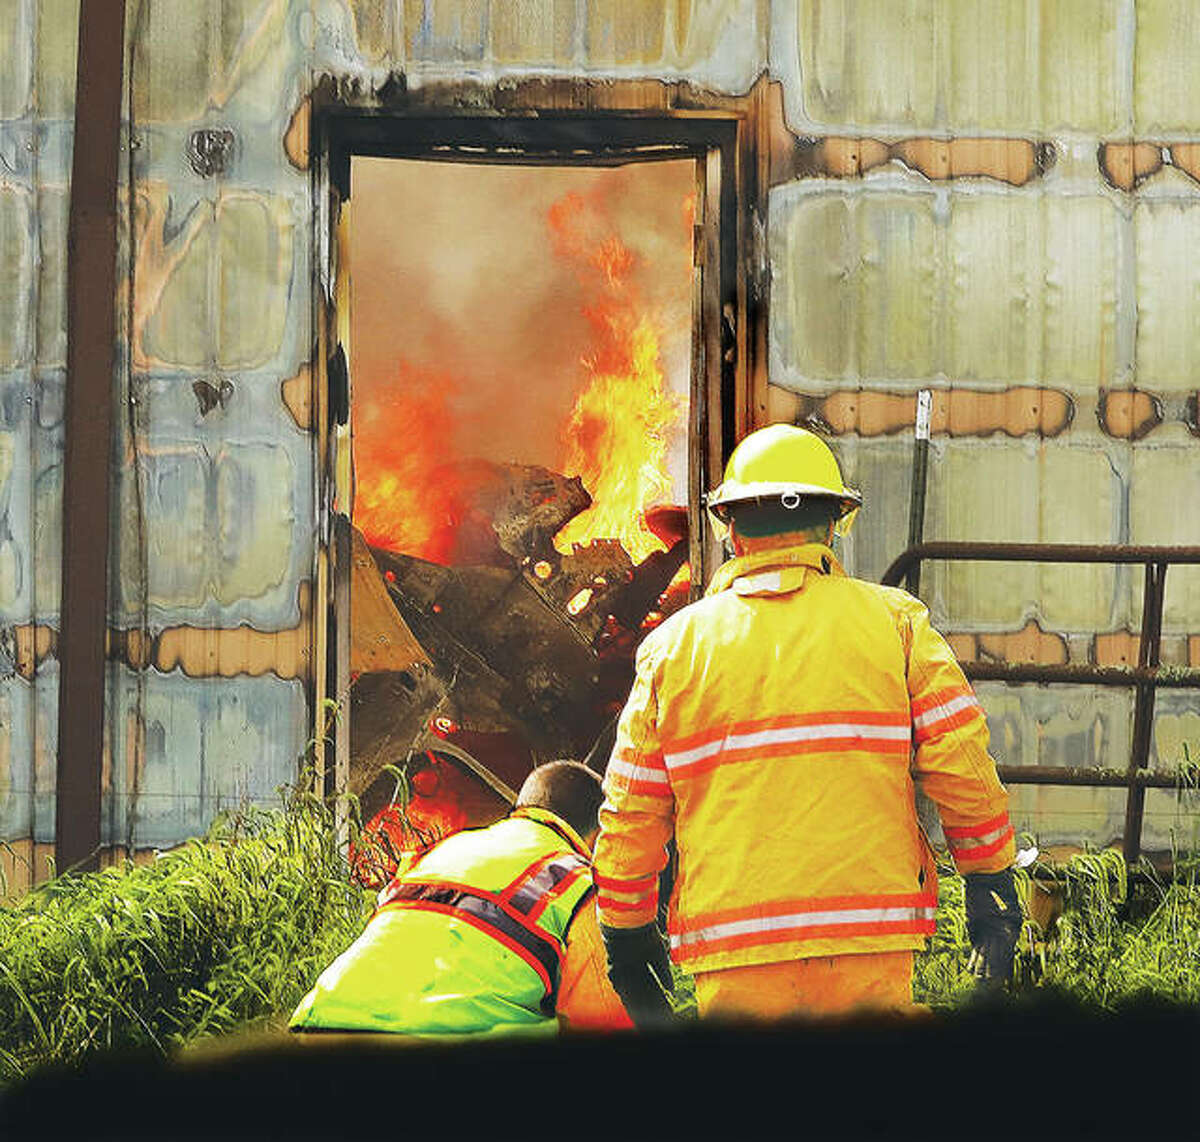 A portion of the north wall of the large shed was still standing and flames could be seen through a door consuming the interior contents Monday as firefighters worked to set up another hose line.